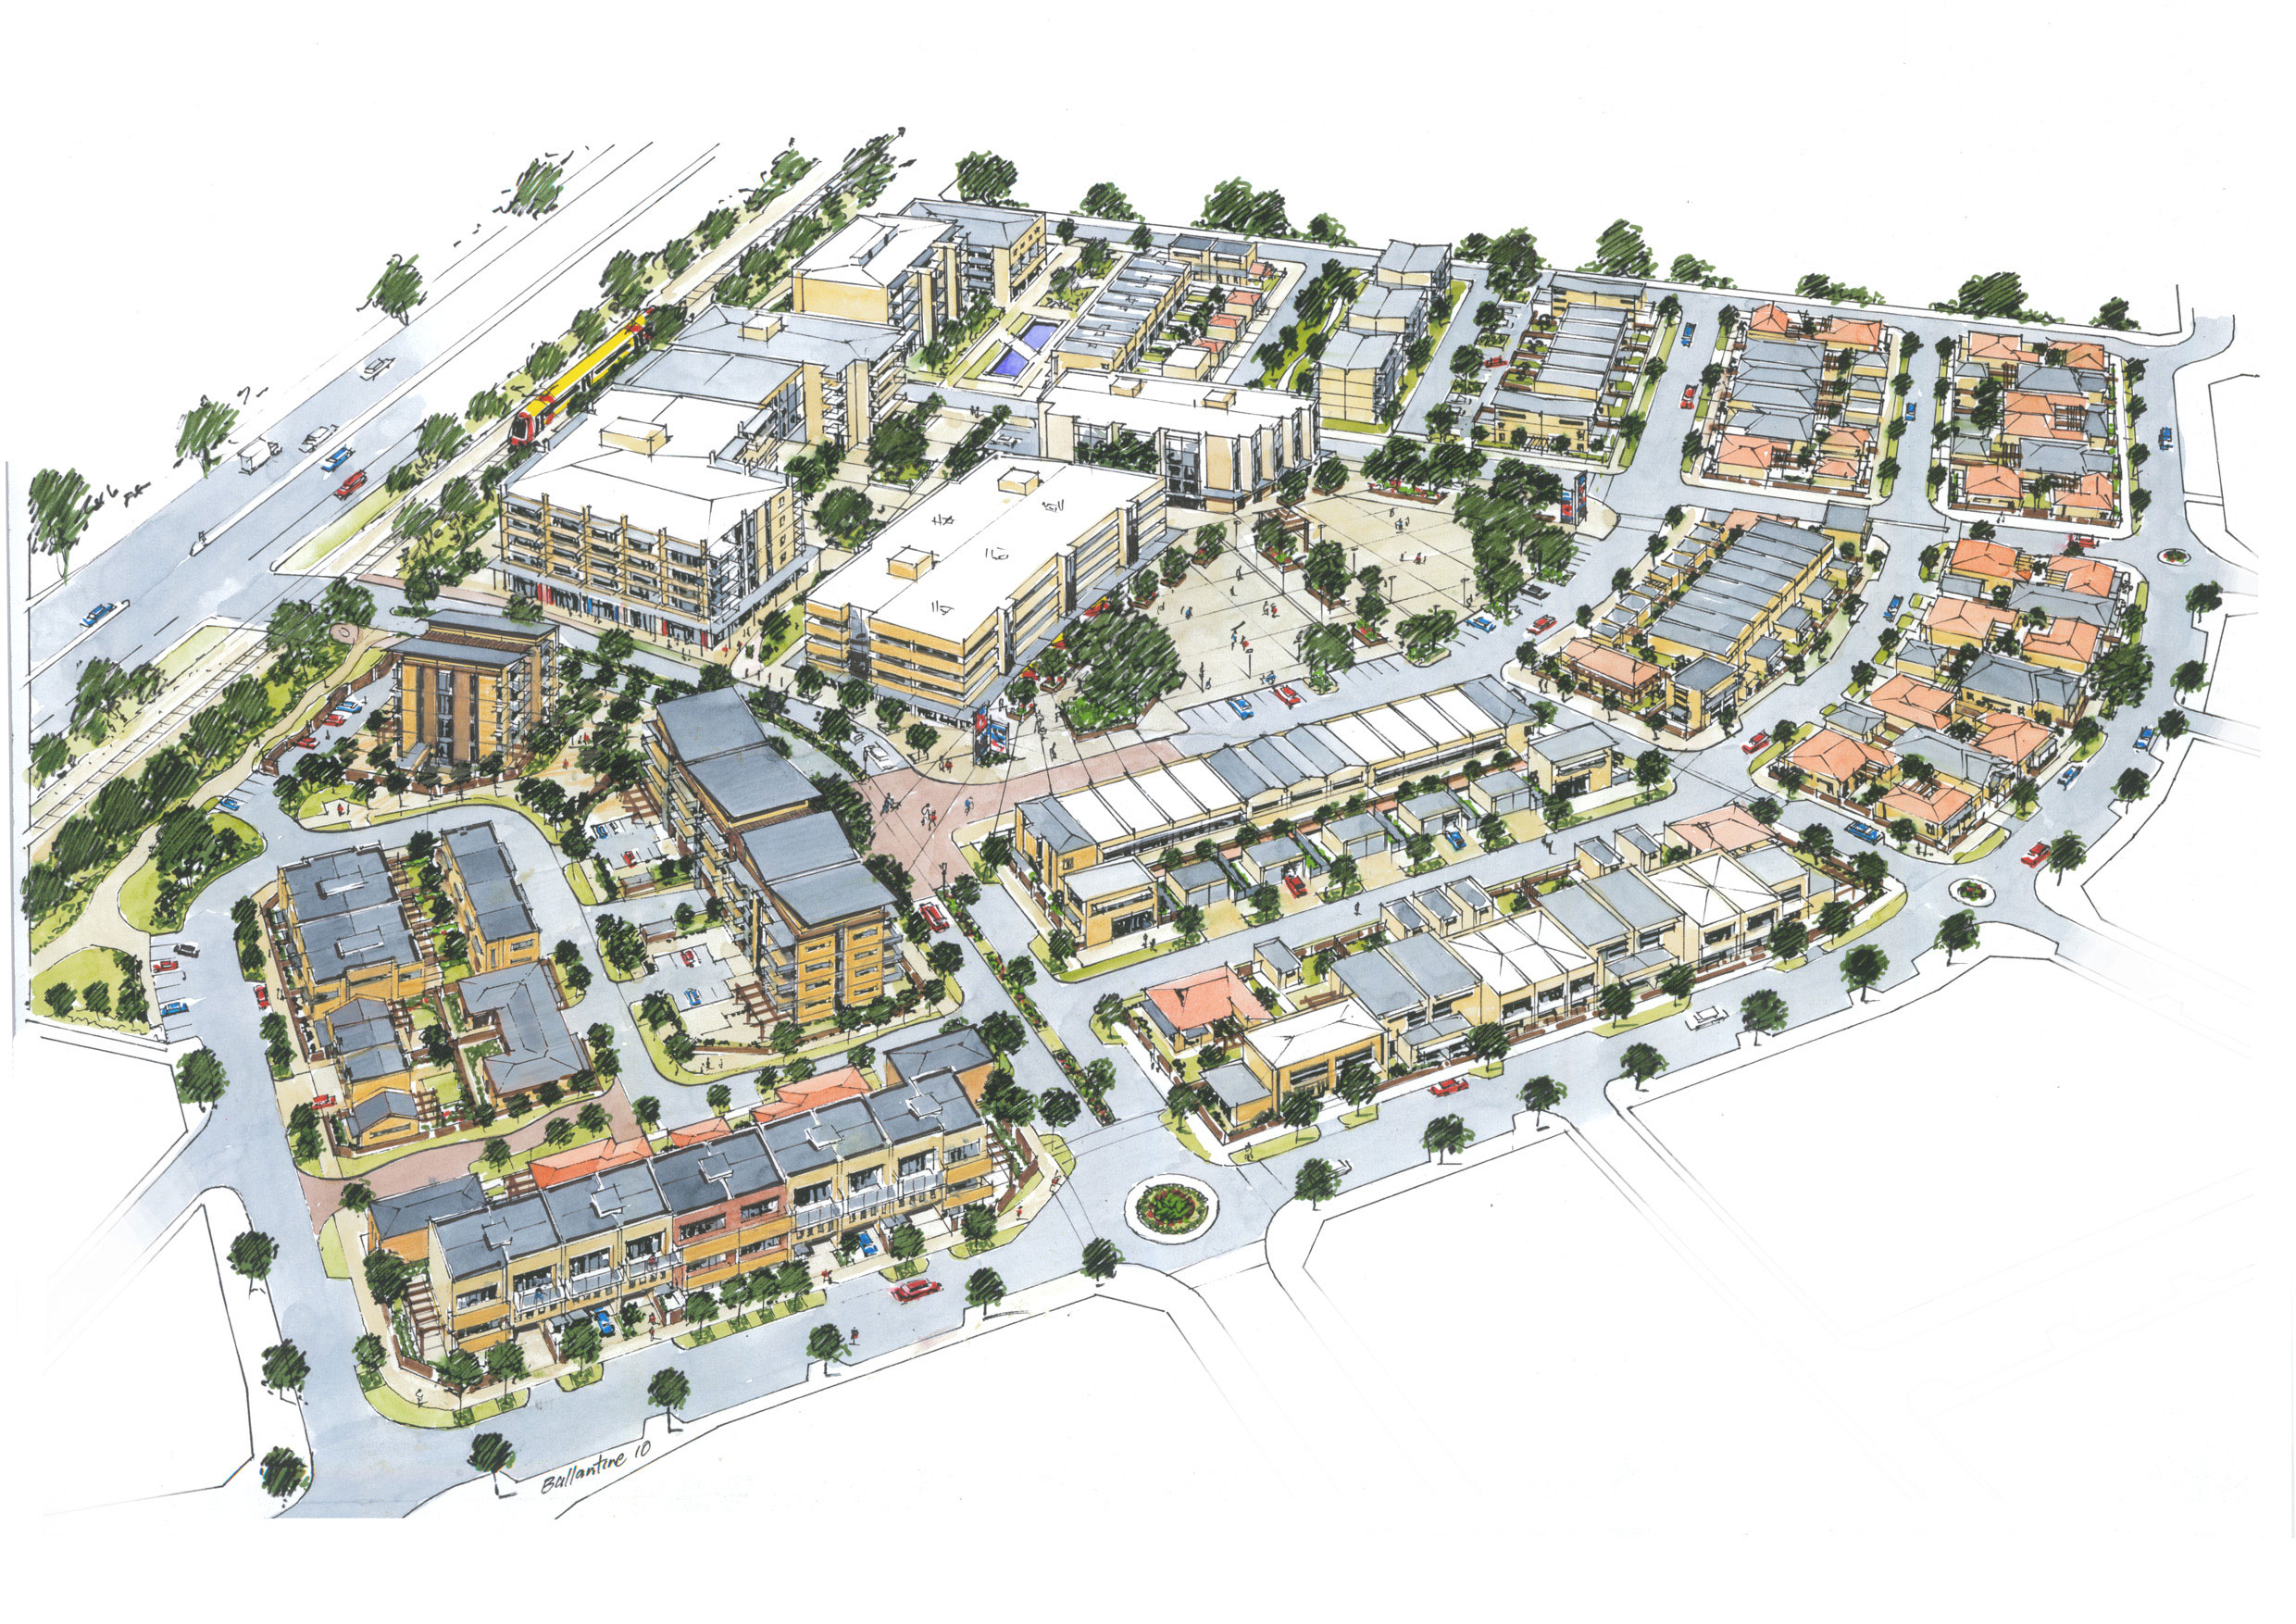 The Masterplan sketch details the emphasis on community and social interaction